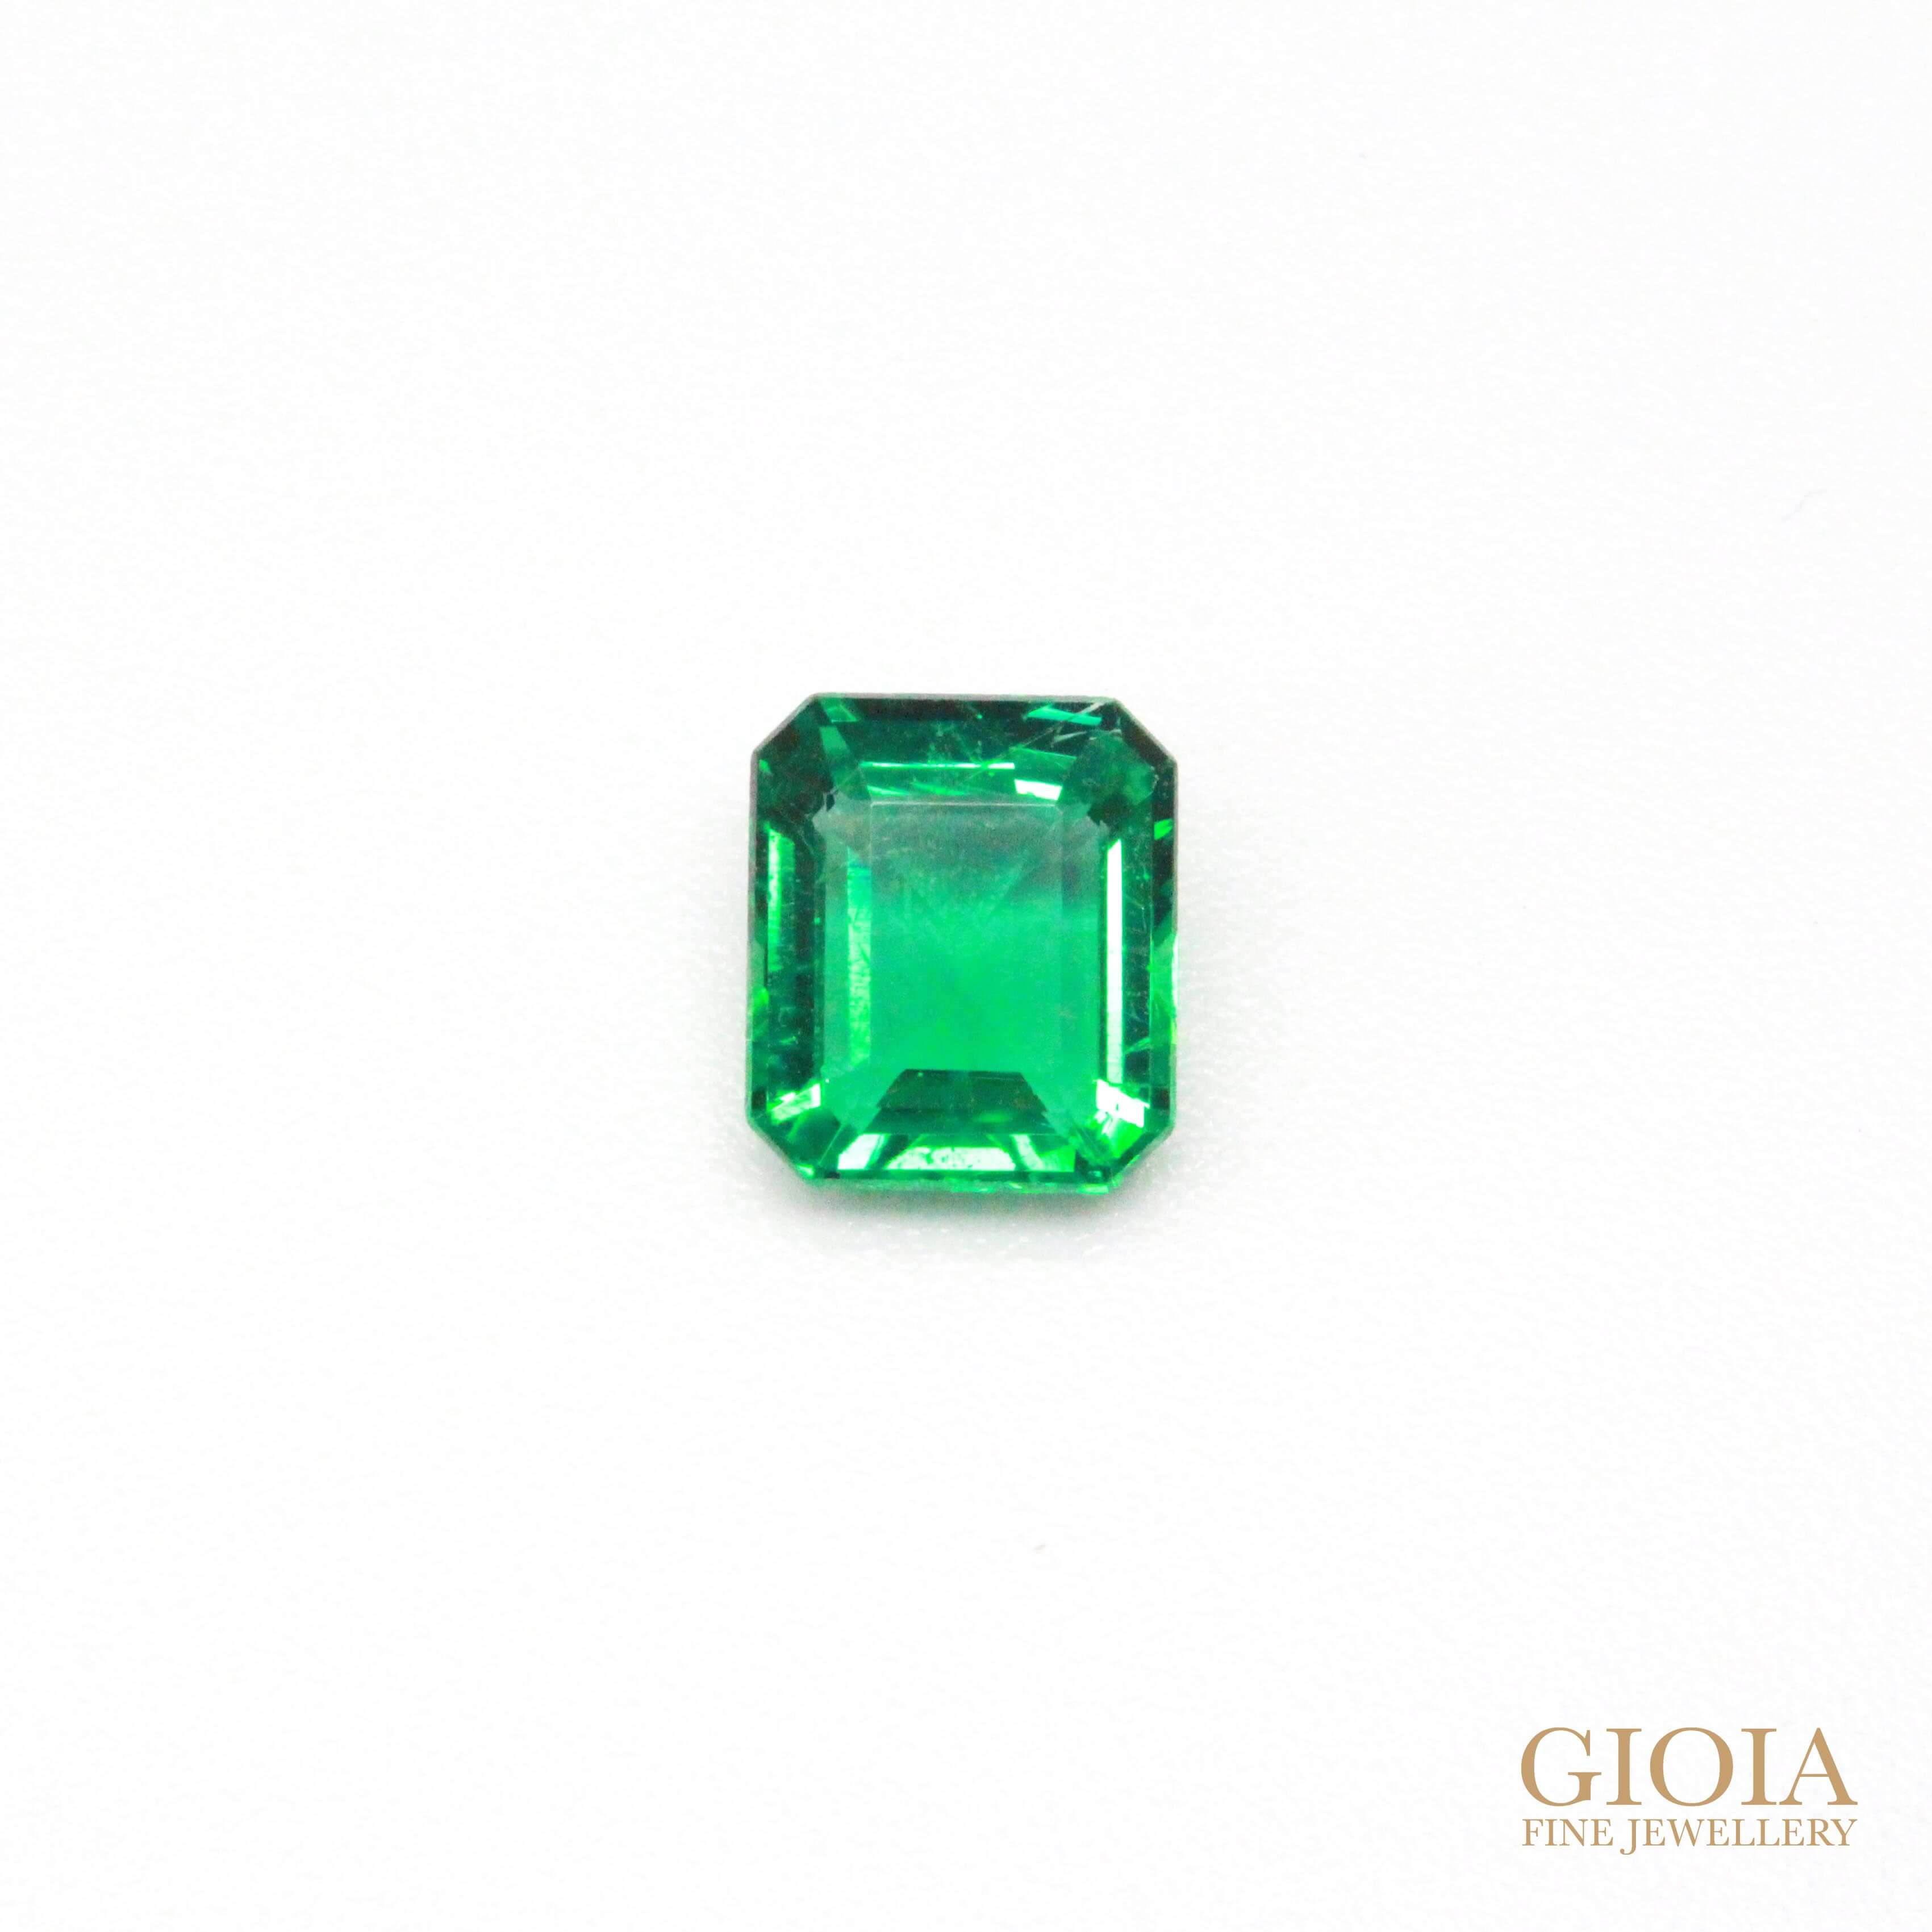 Rare No Oil Emerald, without colour or clarity enhance treatment Gemstone - Local Singapore custom made Jeweller